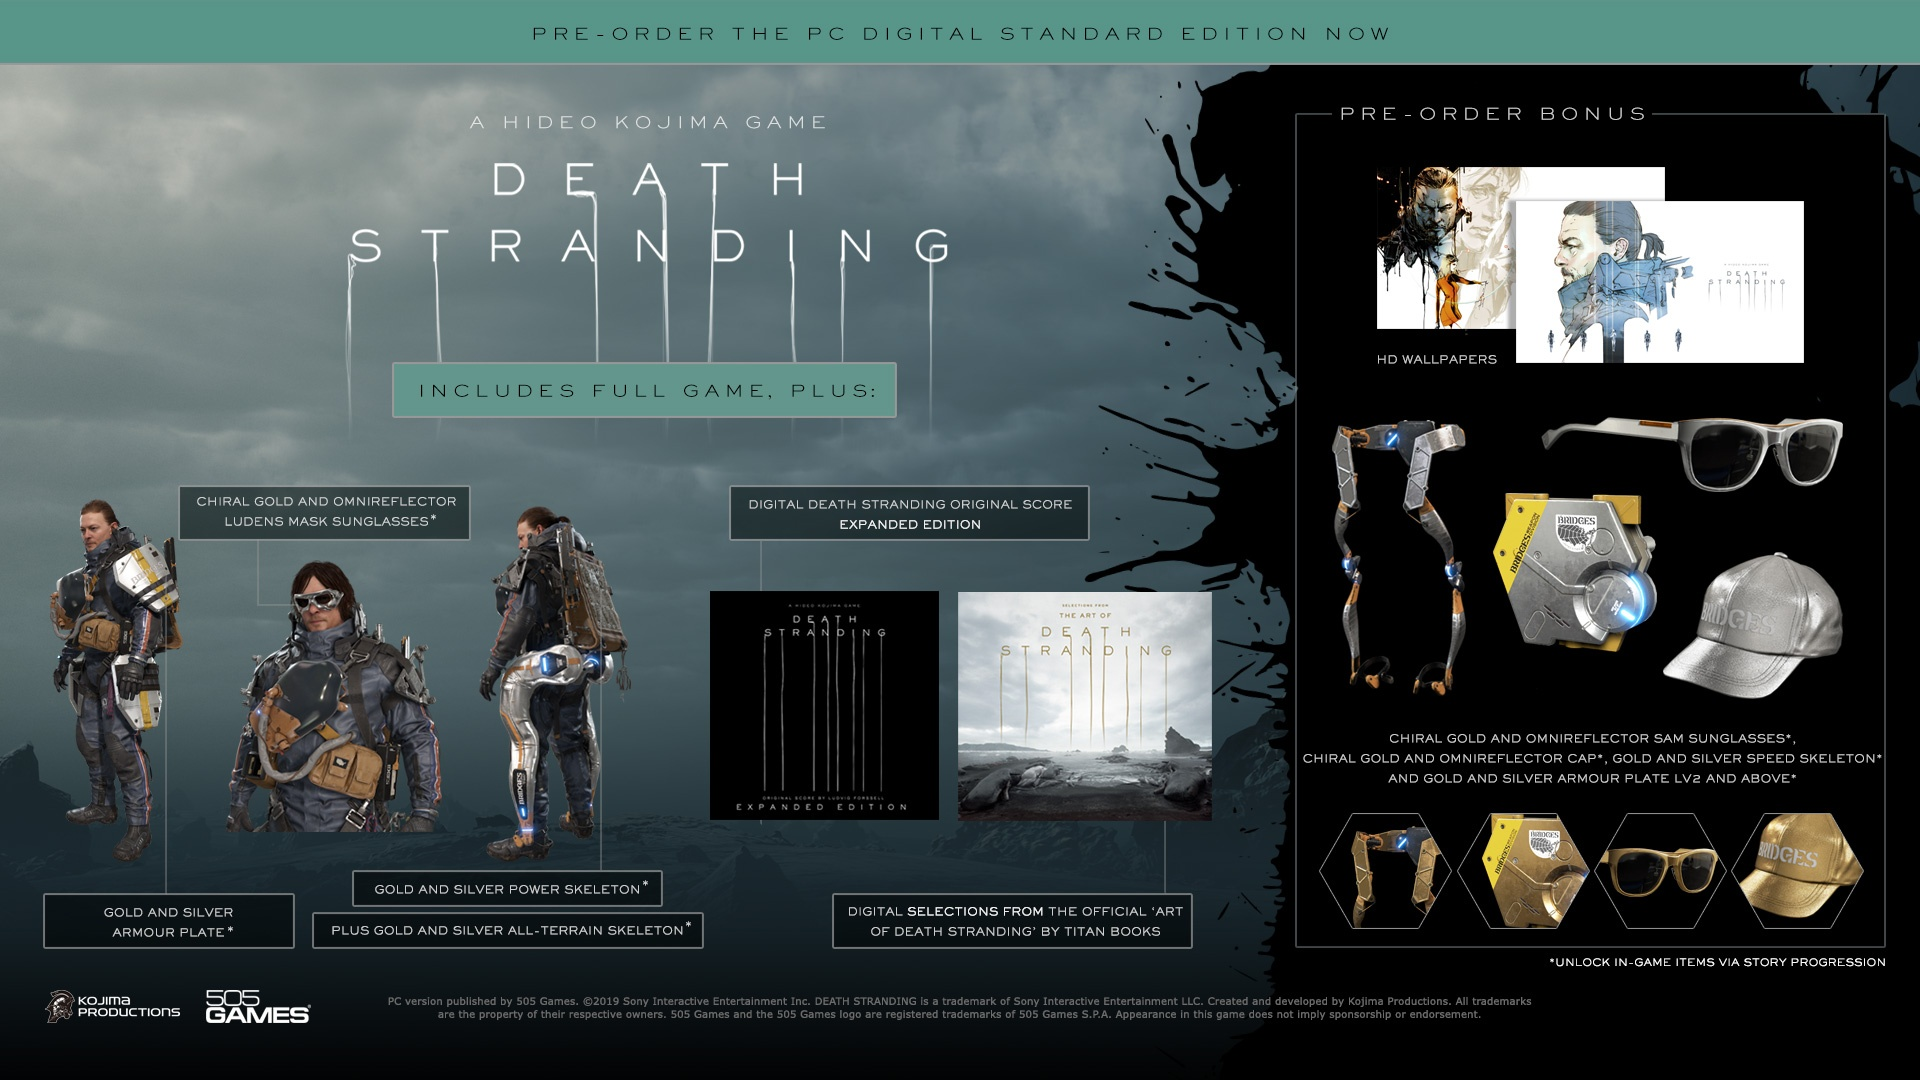 DEATH STRANDING COMING TO STEAM AND THE EPIC GAME STORE ON JUNE 2, 2020